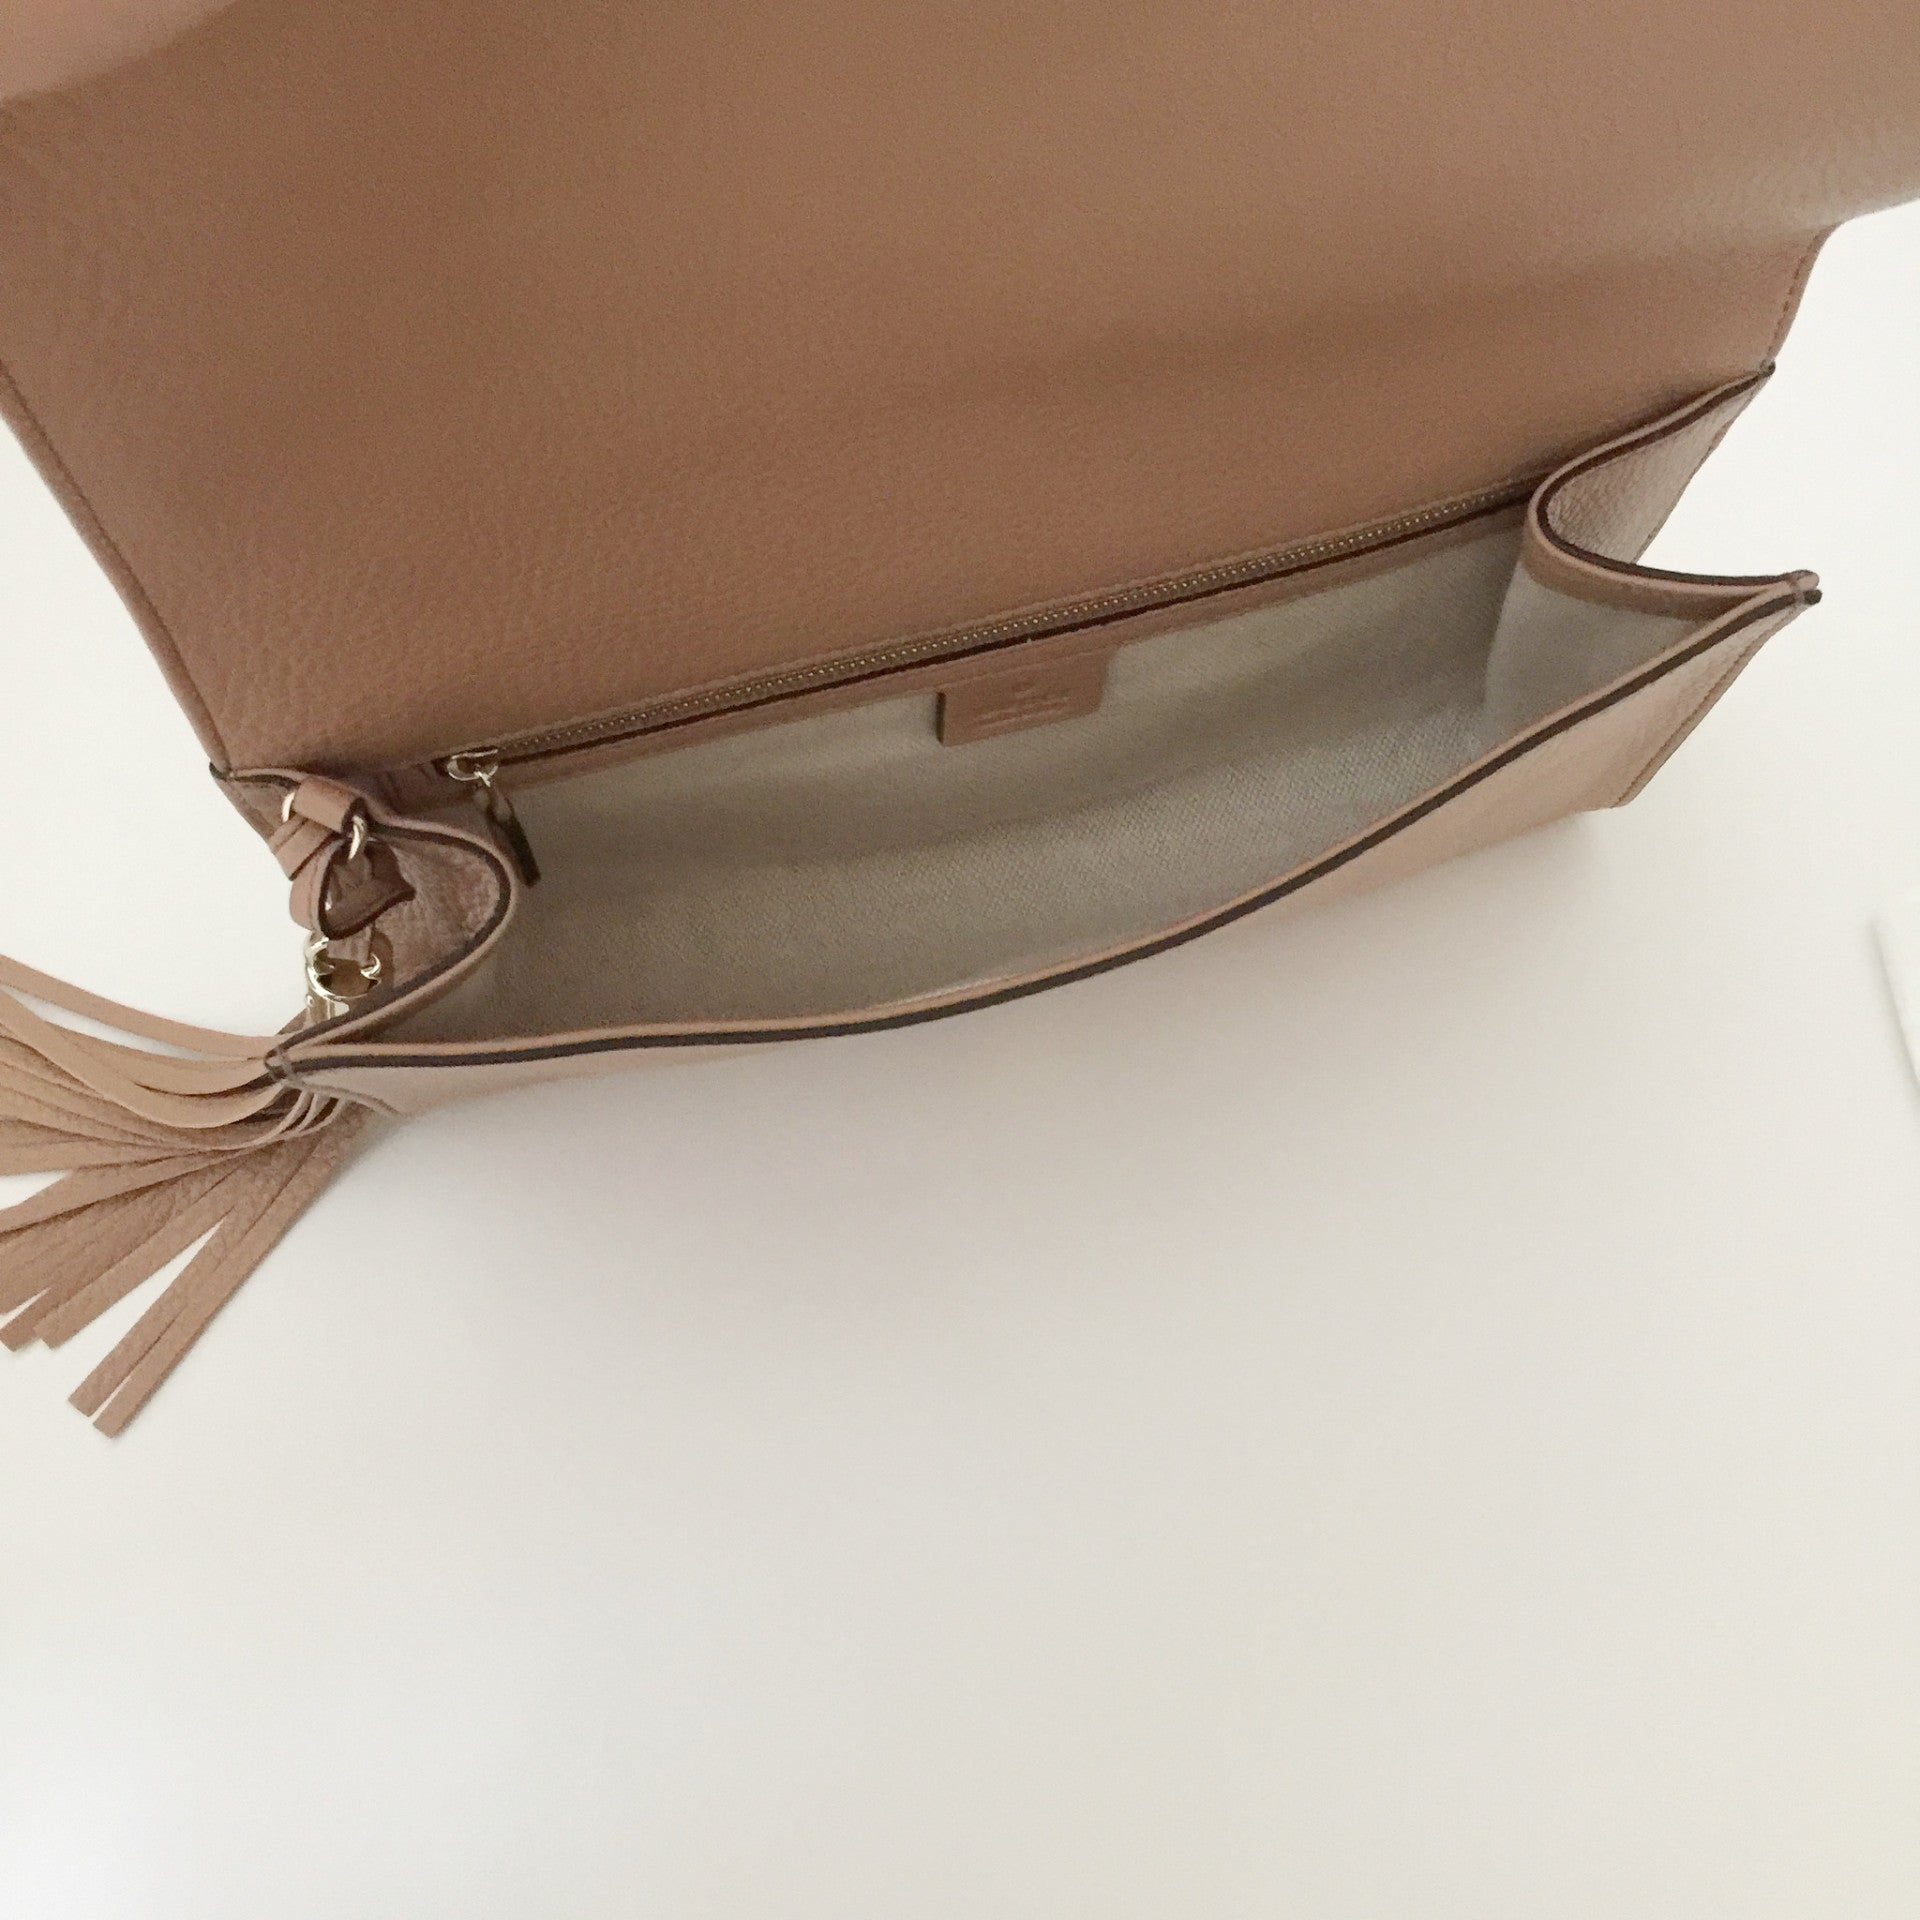 Authentic GUCCI Soho Tan Clutch